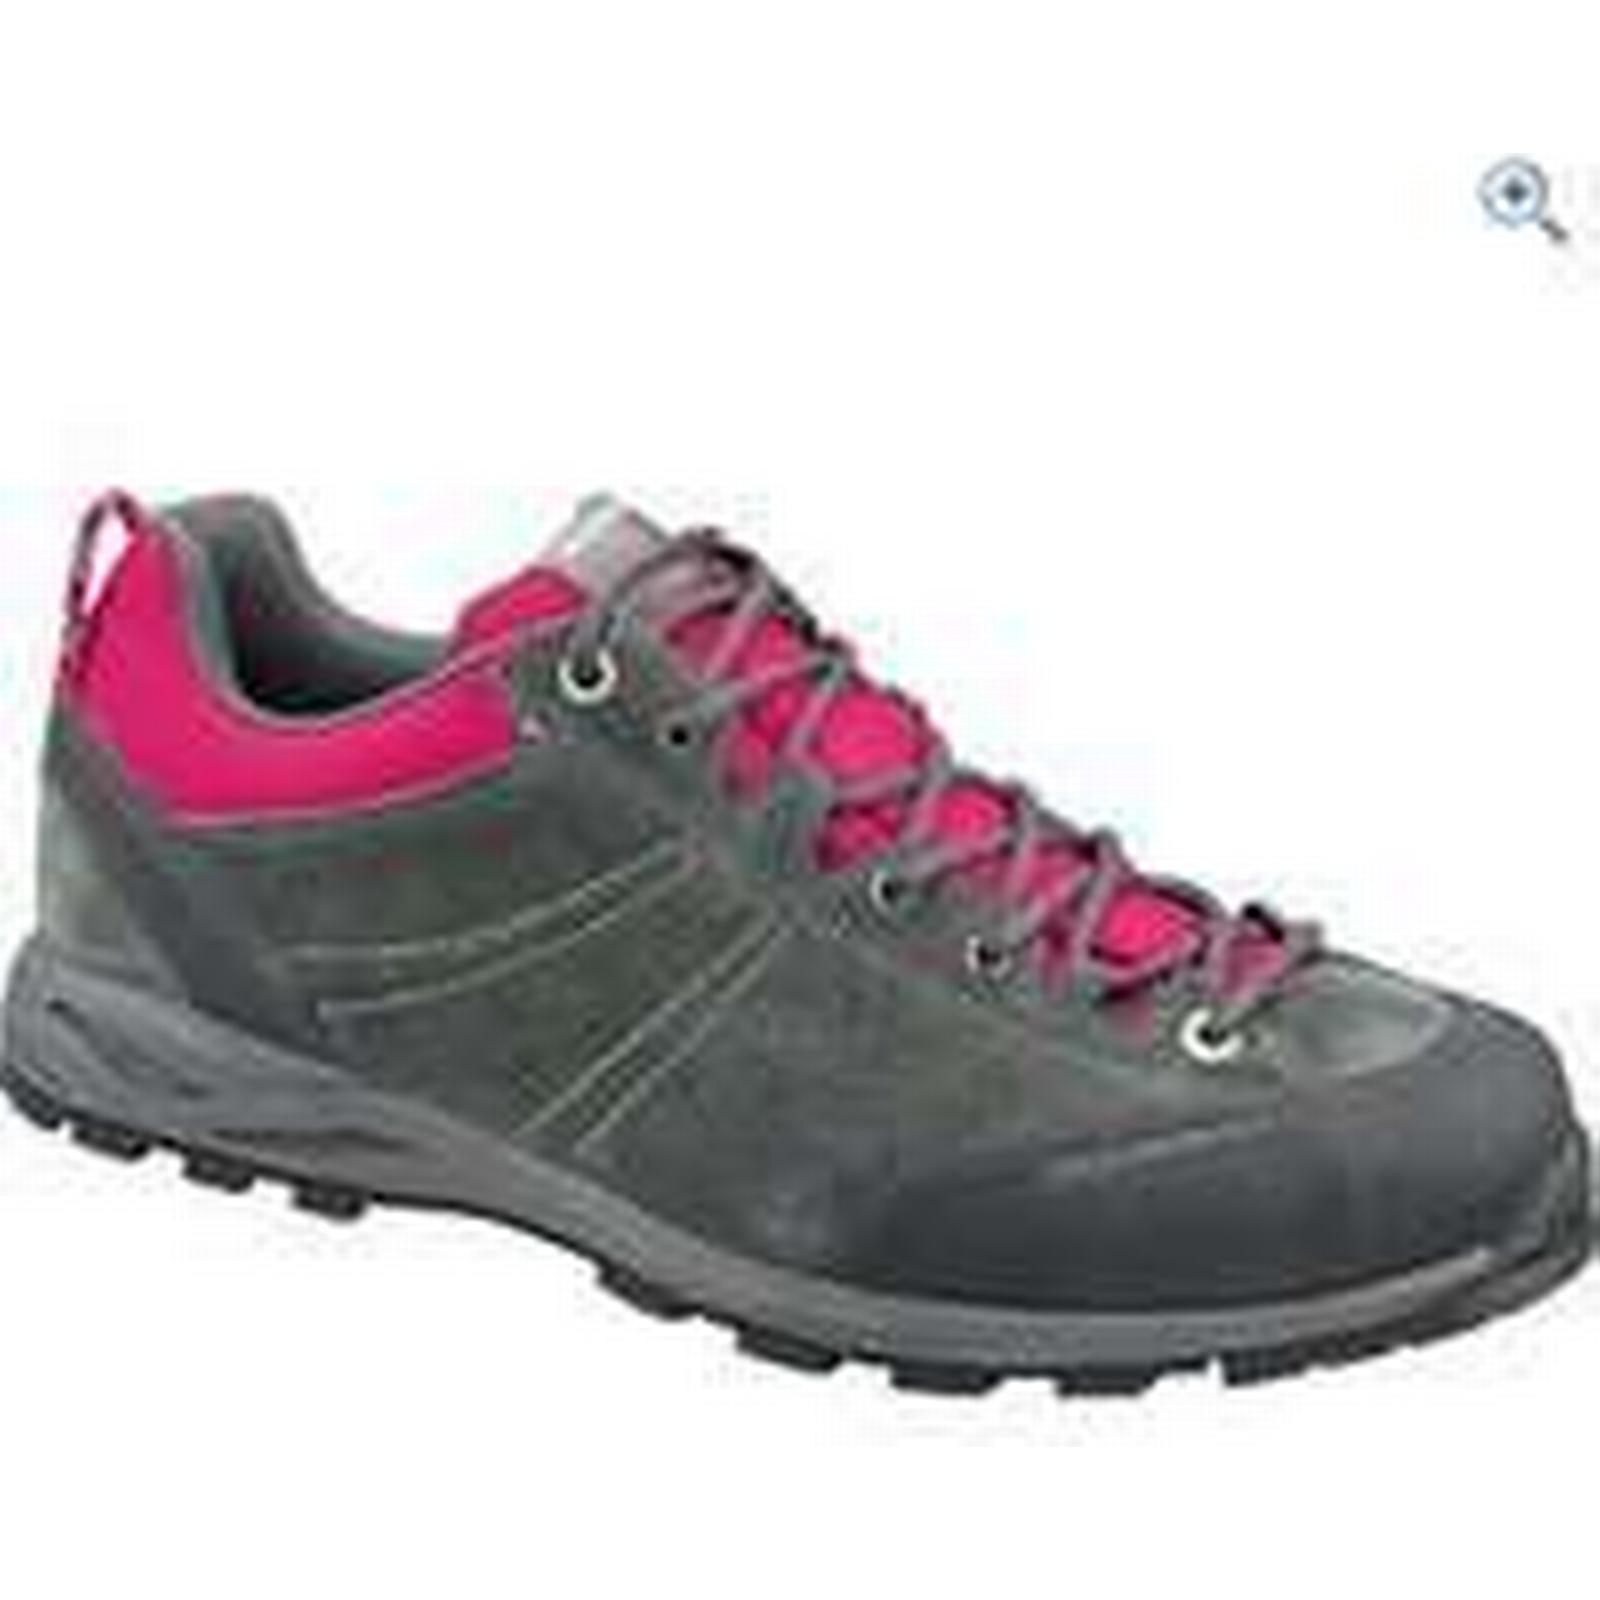 Mammut Women's Wall Low - Shoe - Size: 8 - Low Colour: GRAPHIT-MAGENTA 3c34f8